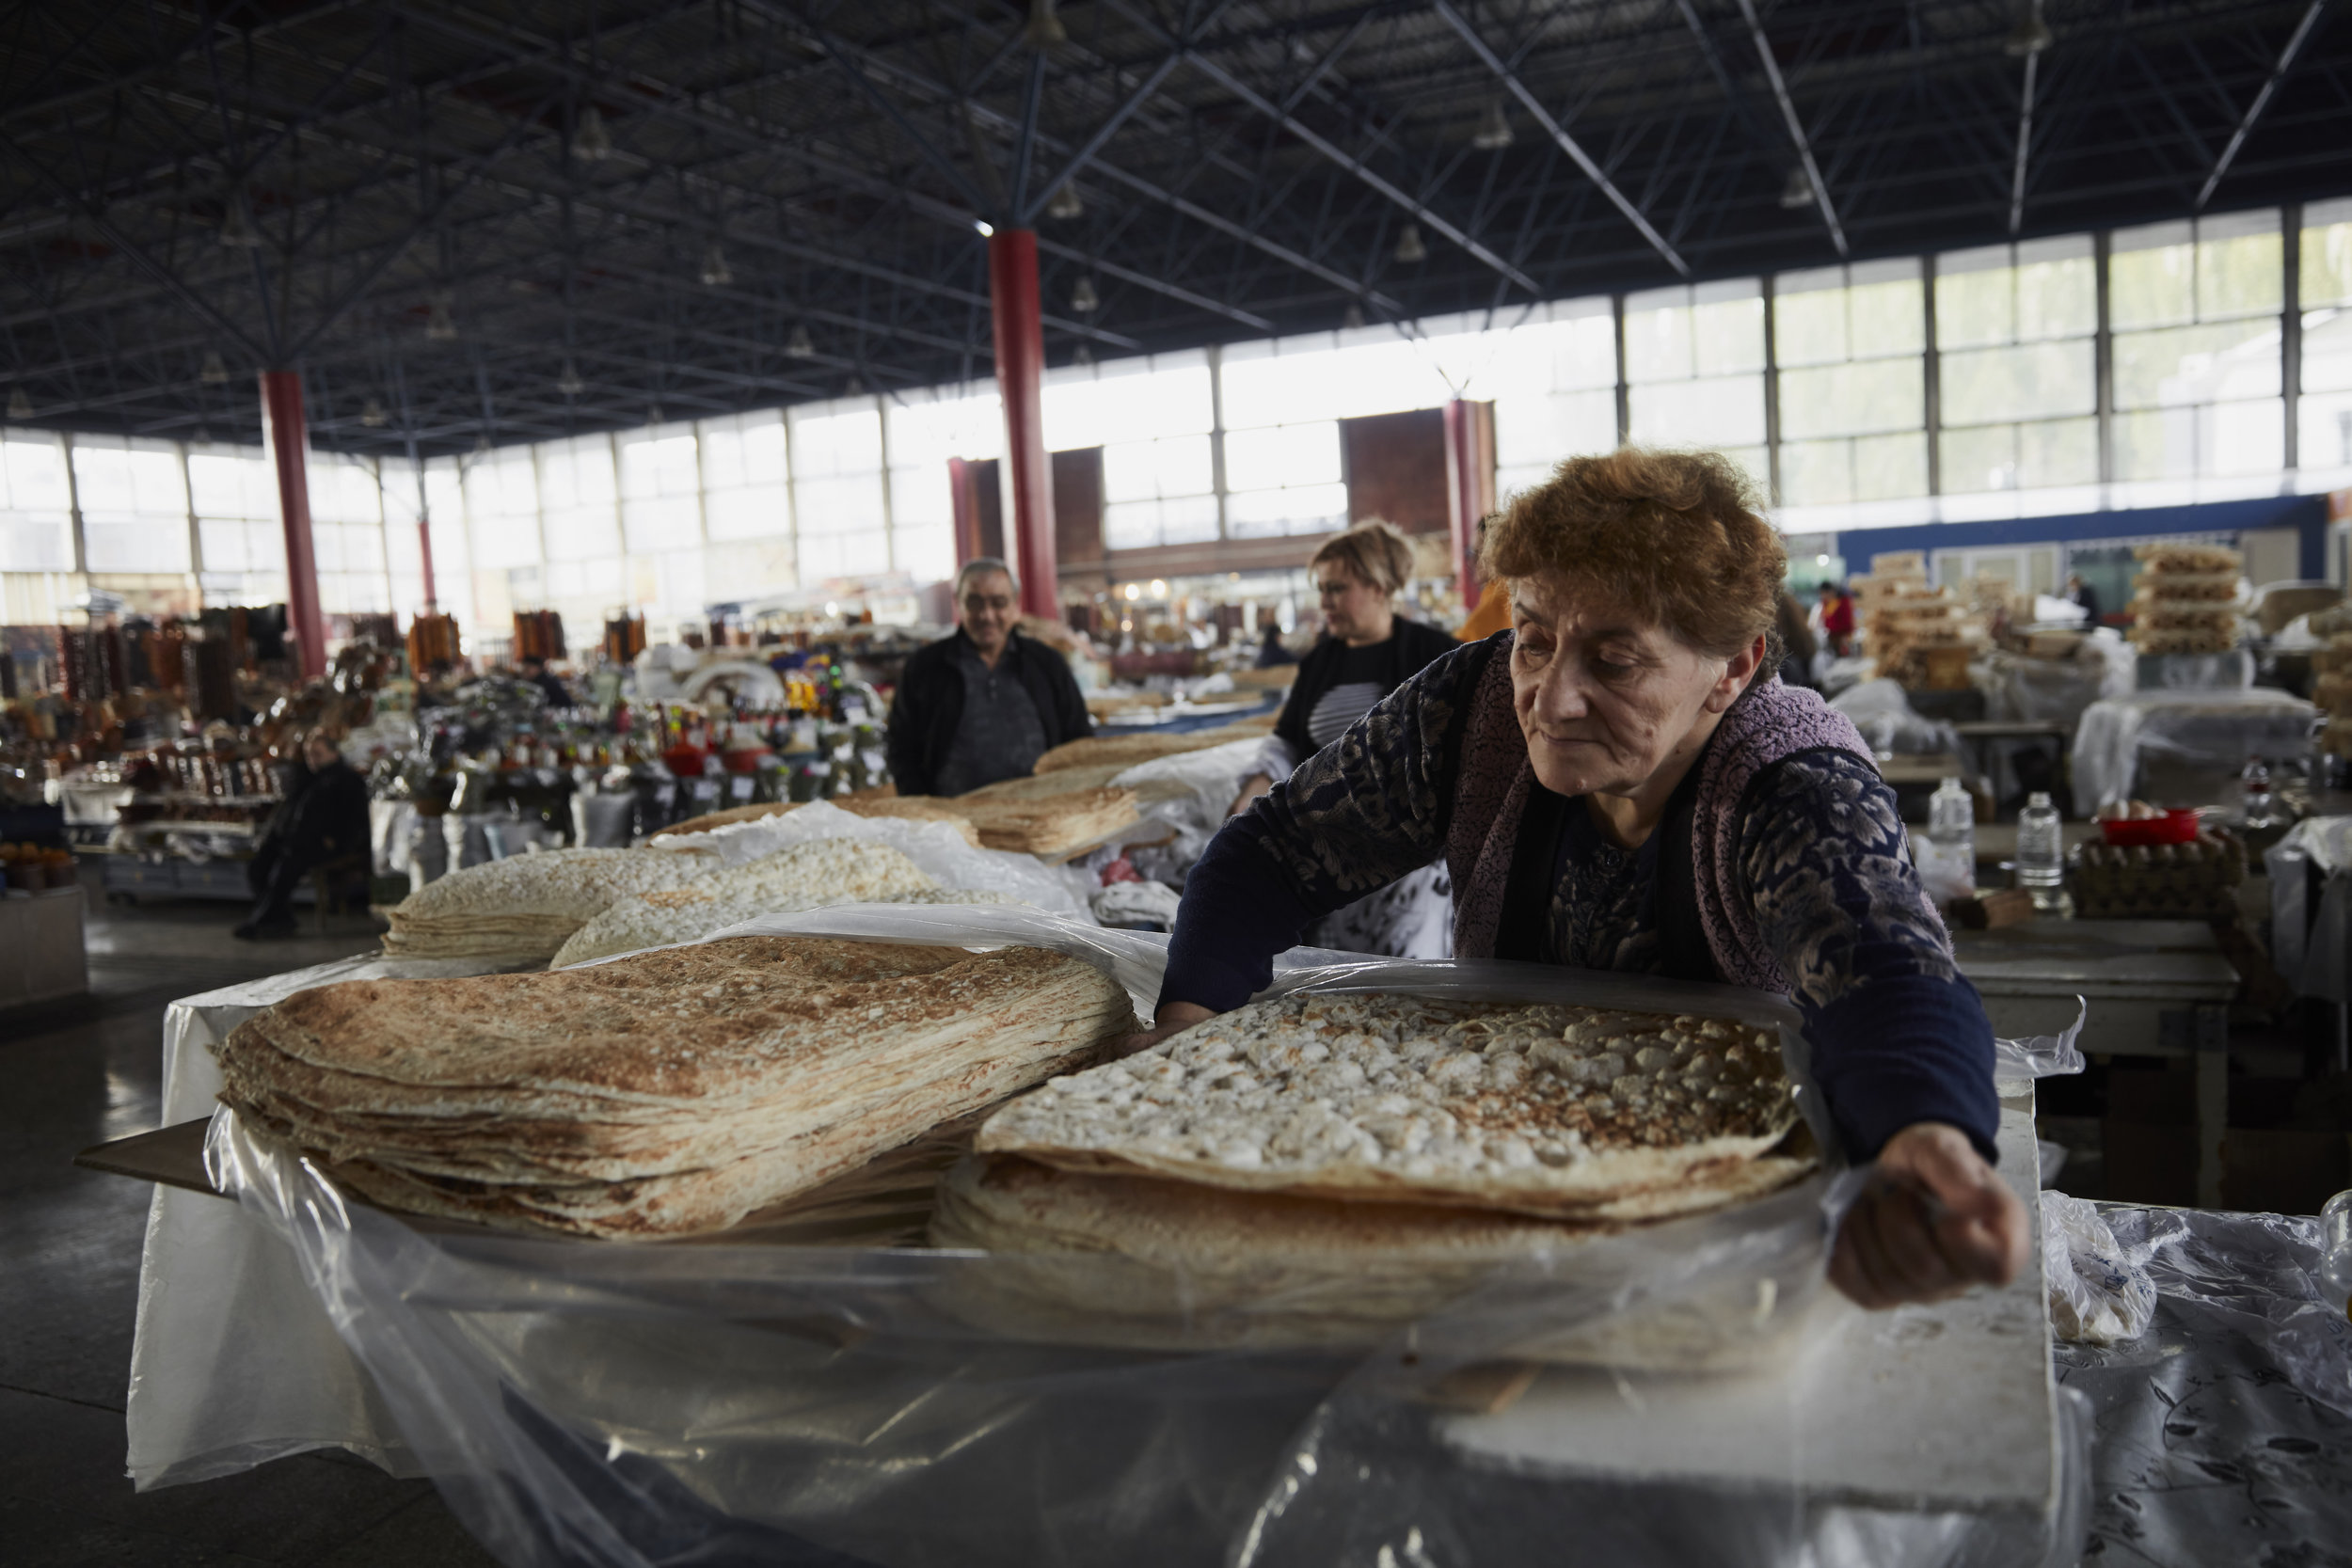 Stacks of lavash line the tables in one corner of GUM Market in Yerevan, where customers can choose between thin and thick varieties.